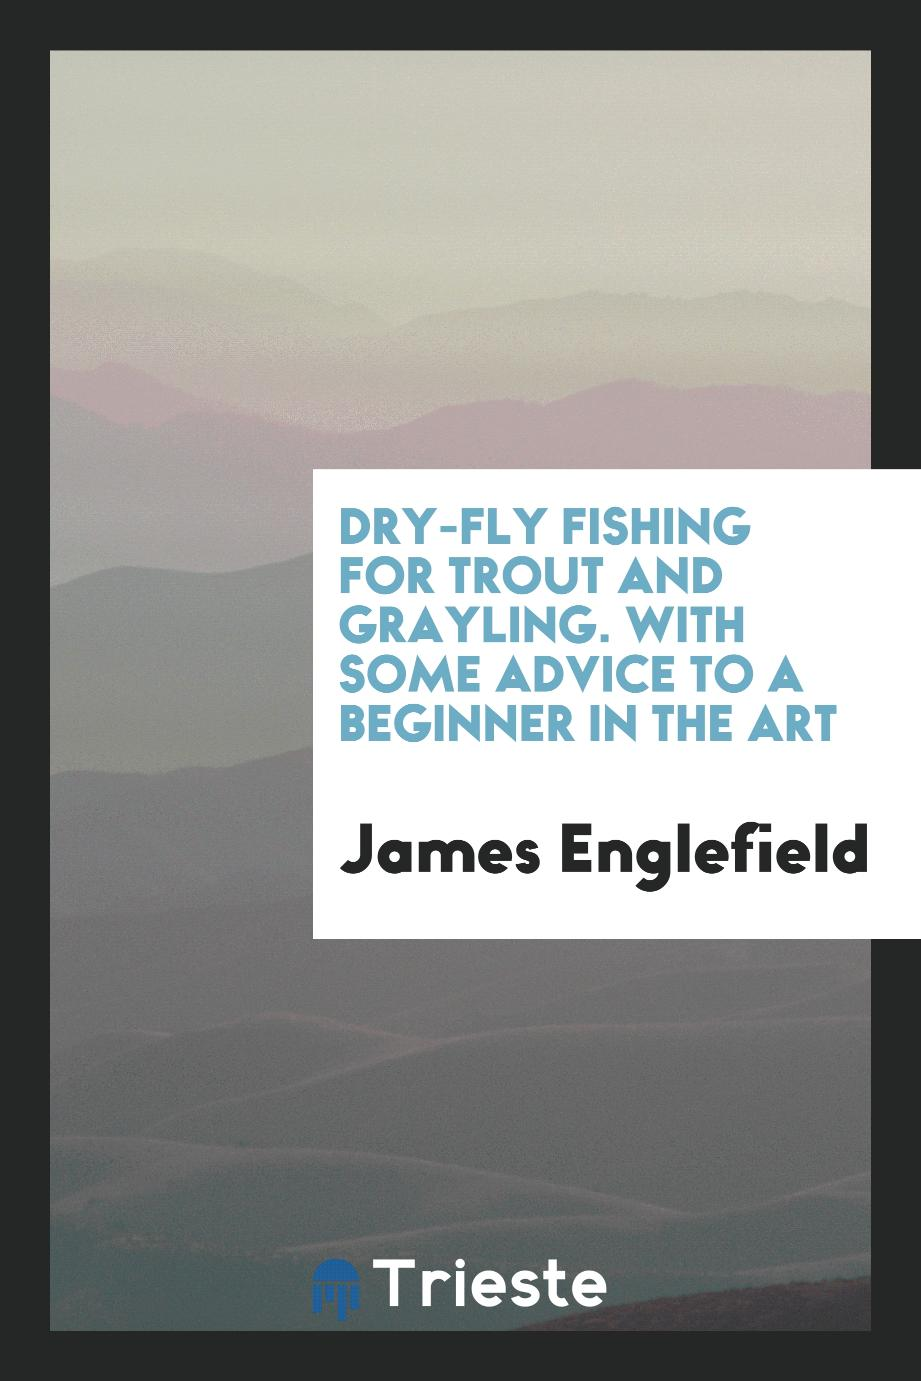 Dry-fly fishing for trout and grayling. With some advice to a beginner in the art